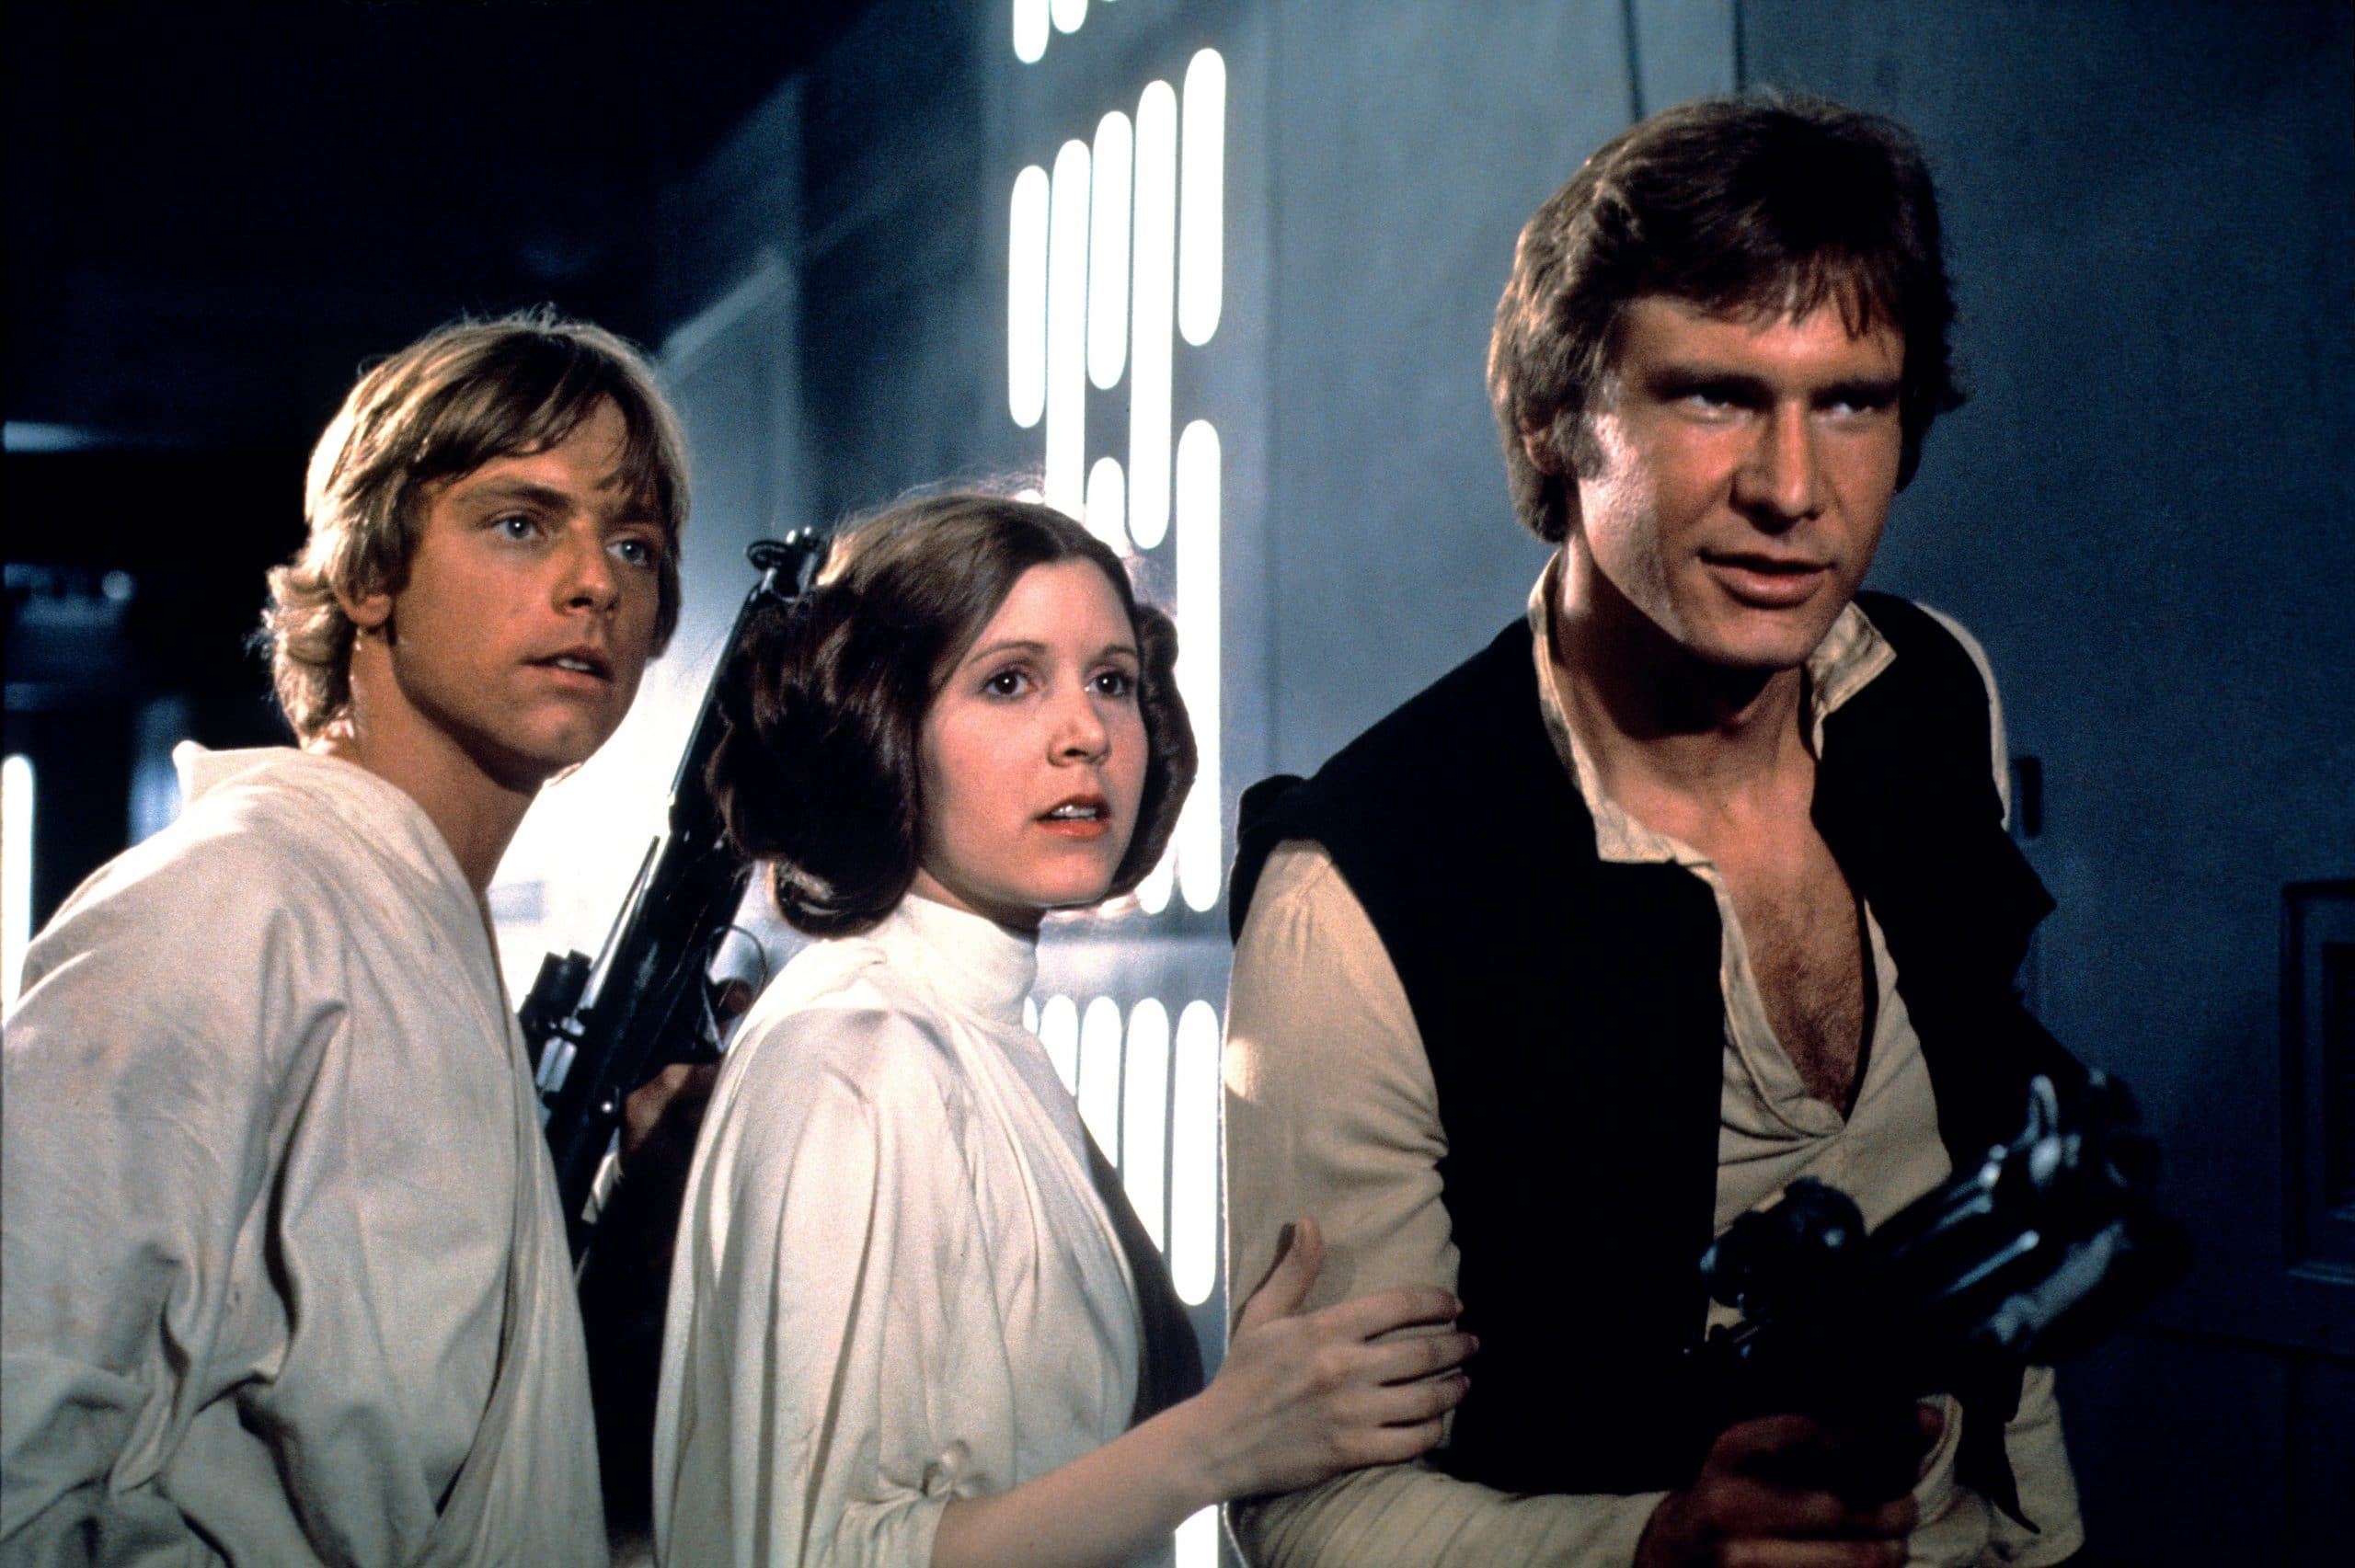 STAR WARS, (aka STAR WARS: EPISODE IV - A NEW HOPE), Mark Hamill, Carrie Fisher, Harrison Ford